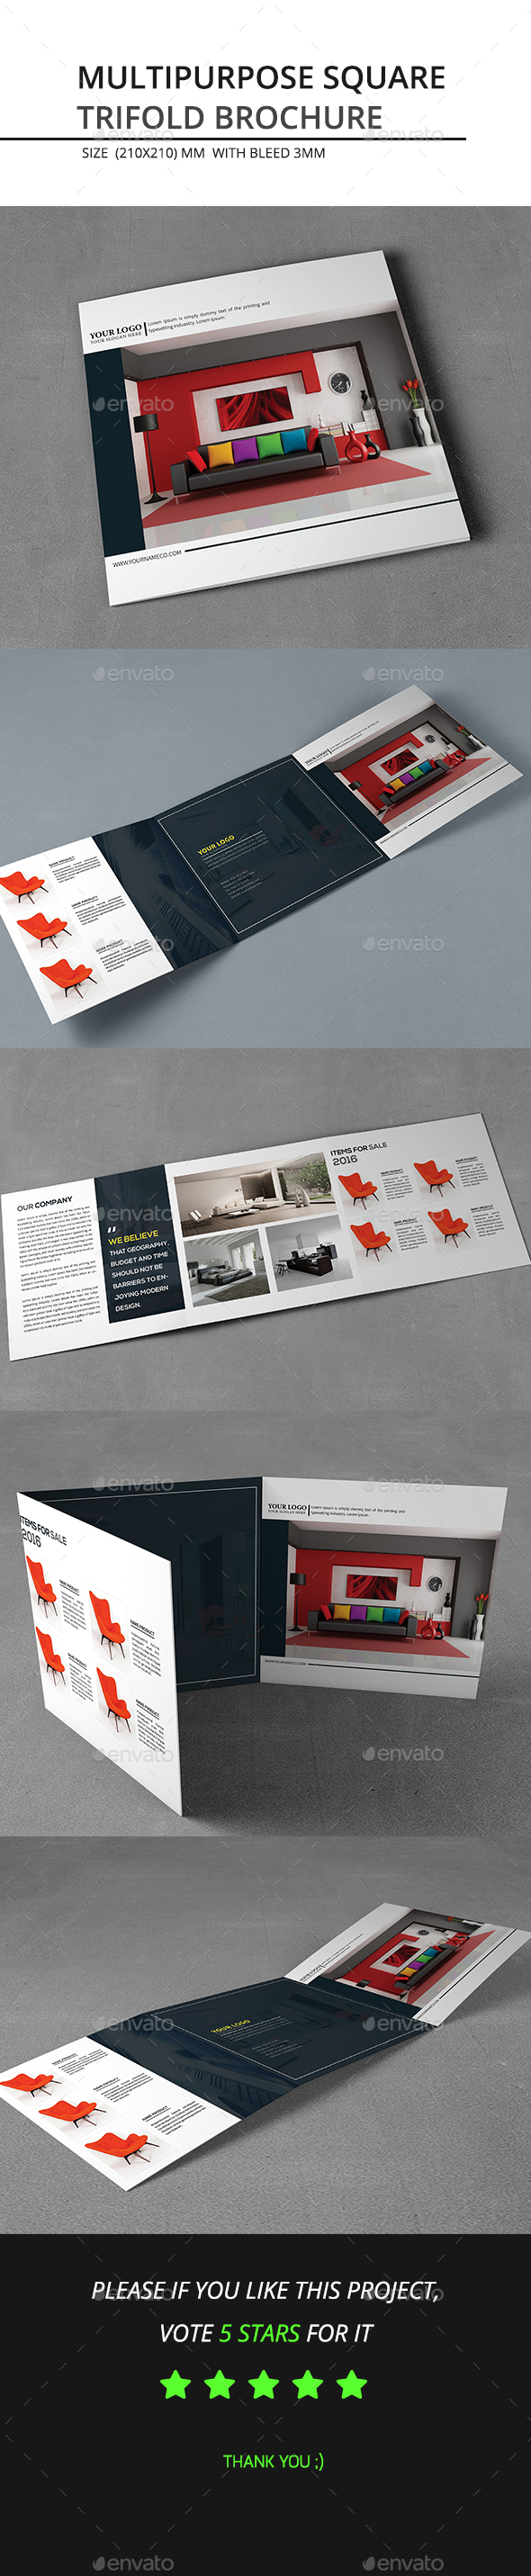 Multipurpose Square Trifold Brochure - Catalogs Brochures